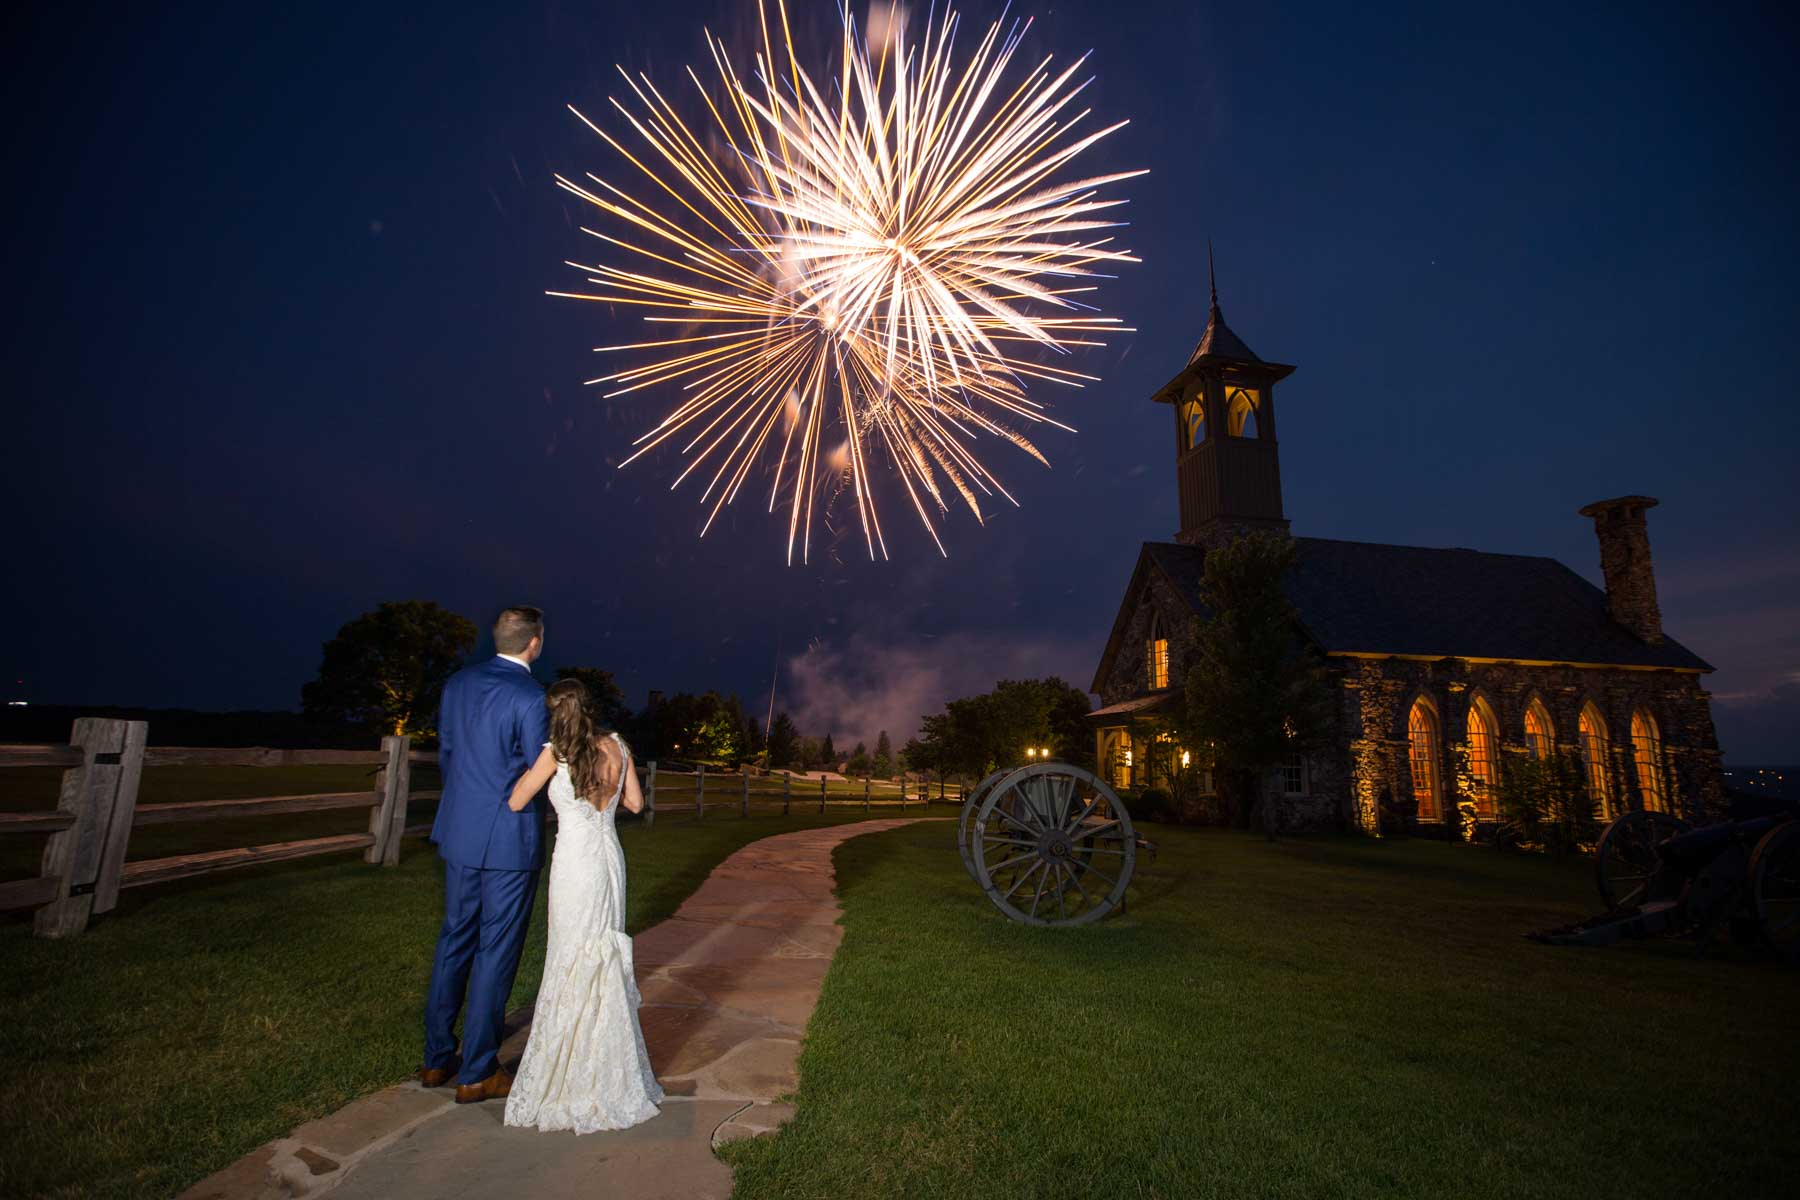 wedding fireworks-1.jpg